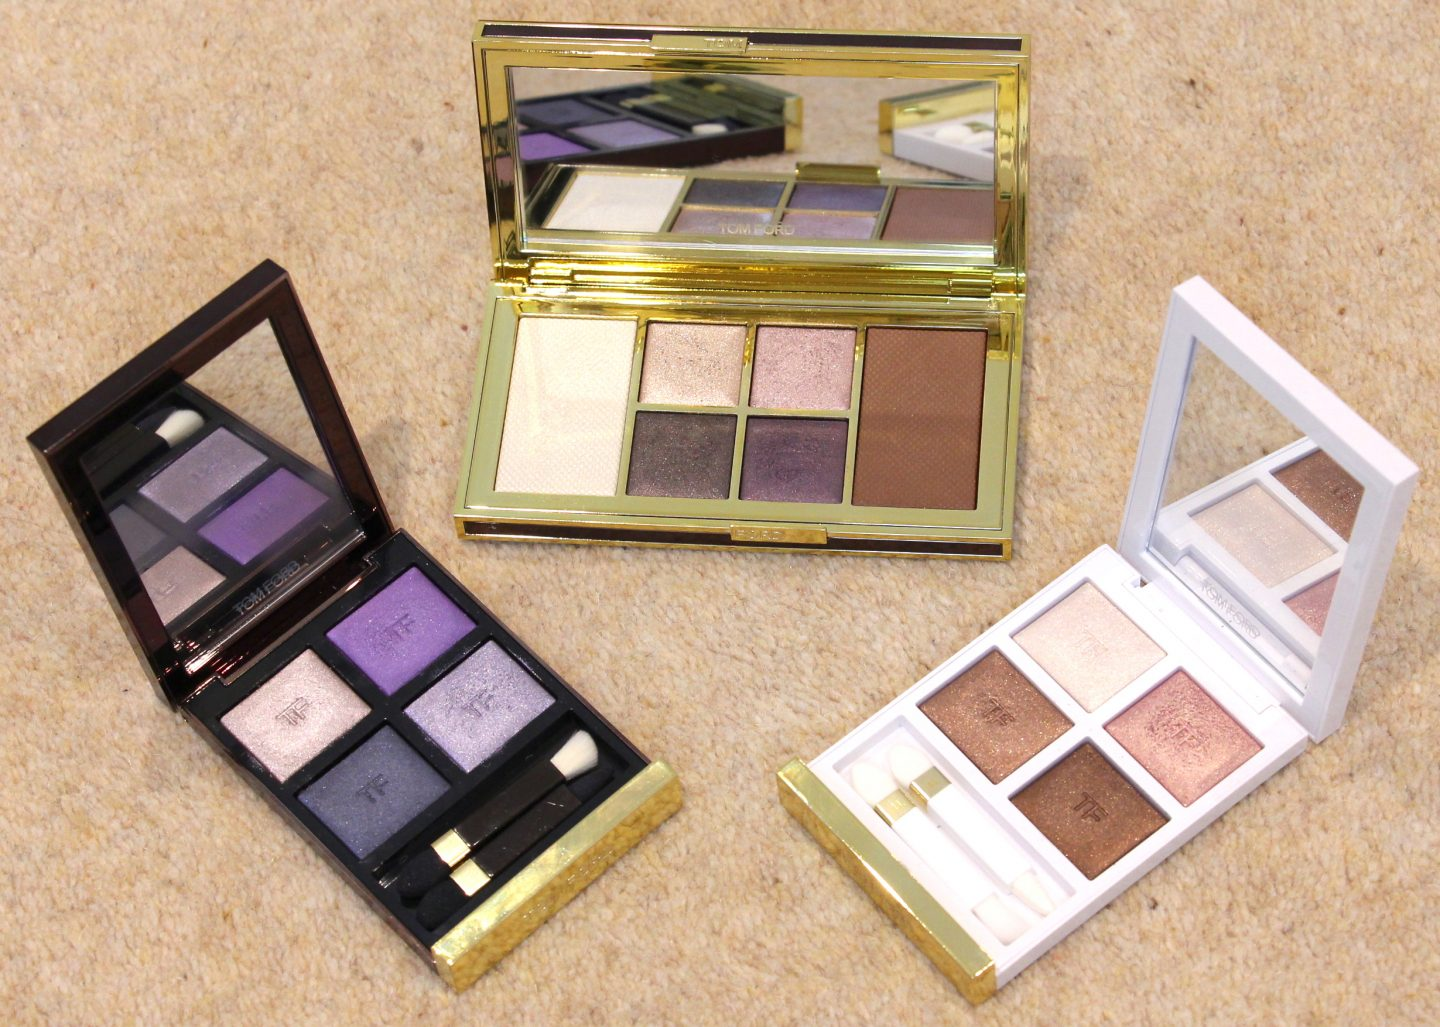 Tom Ford Eye Quads & Shade and Illuminate palette Moonlit Violet